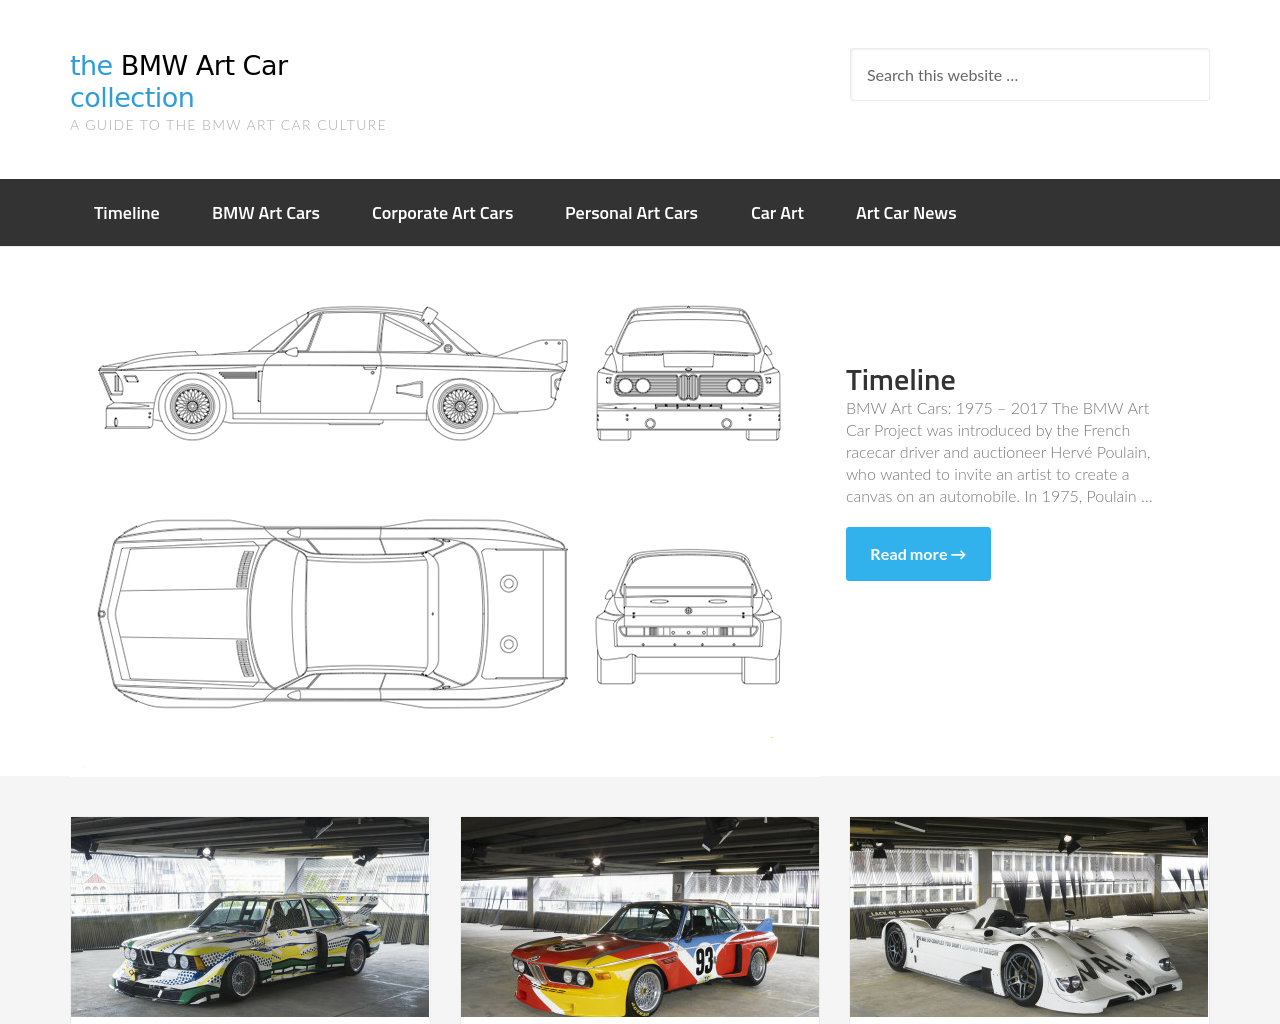 The-BMW-Art-Car-Collection-Advertising-Reviews-Pricing